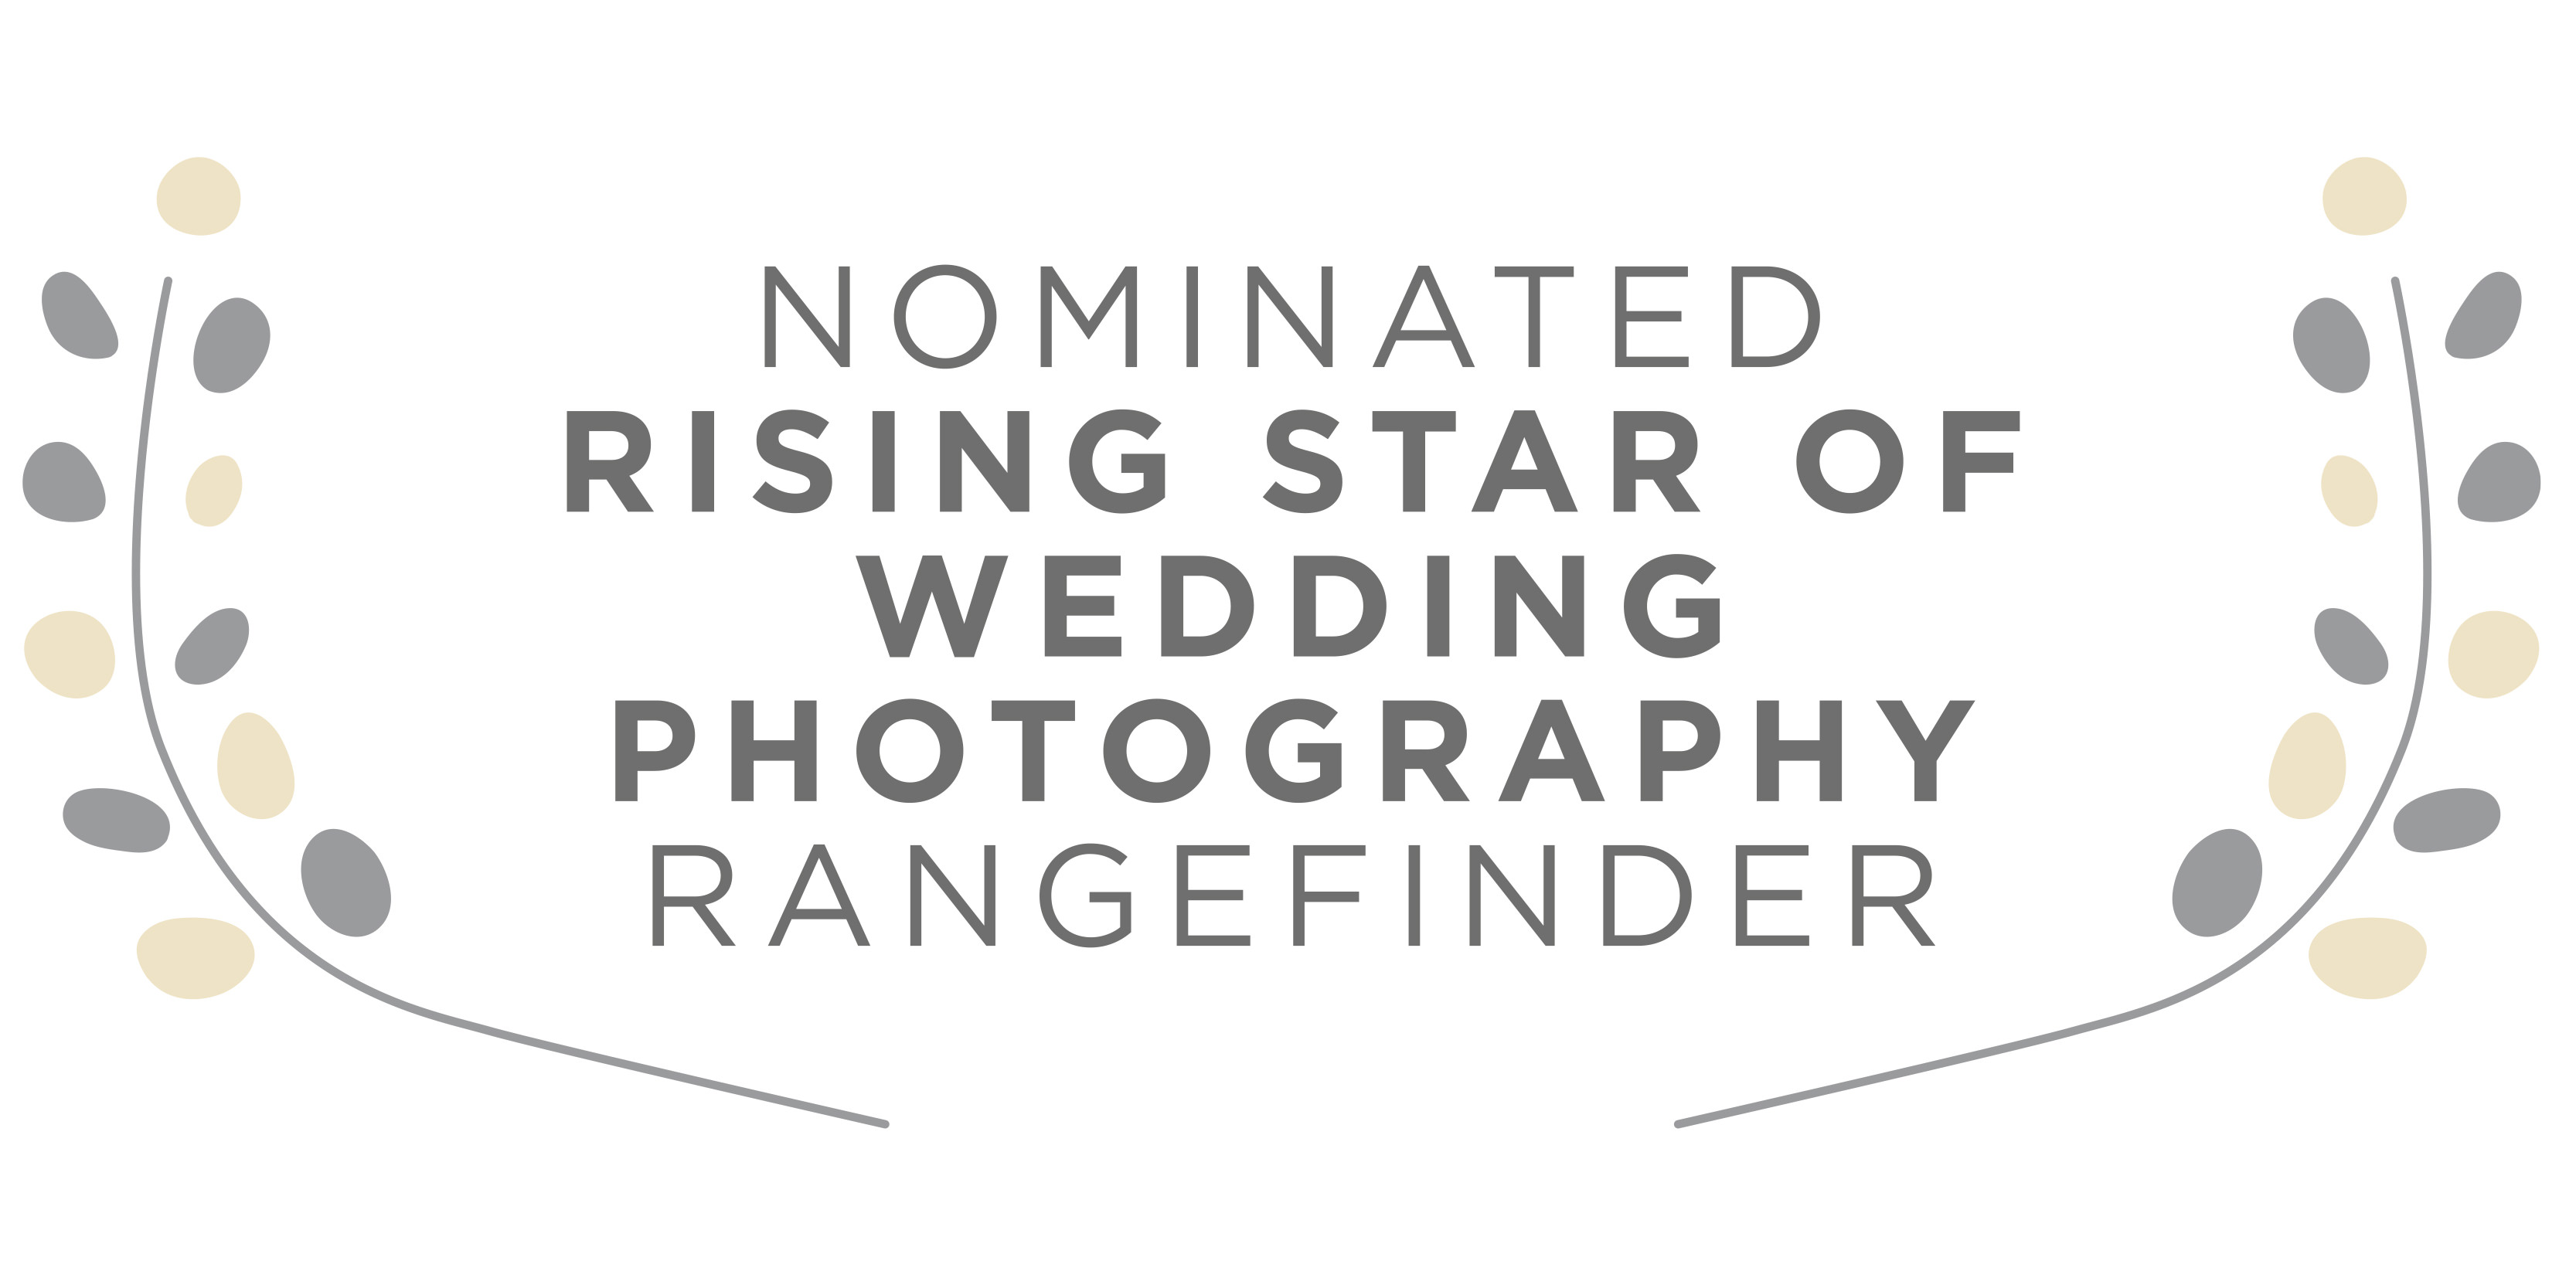 Rangefinder 30 Rising Stars Nominated Photographer